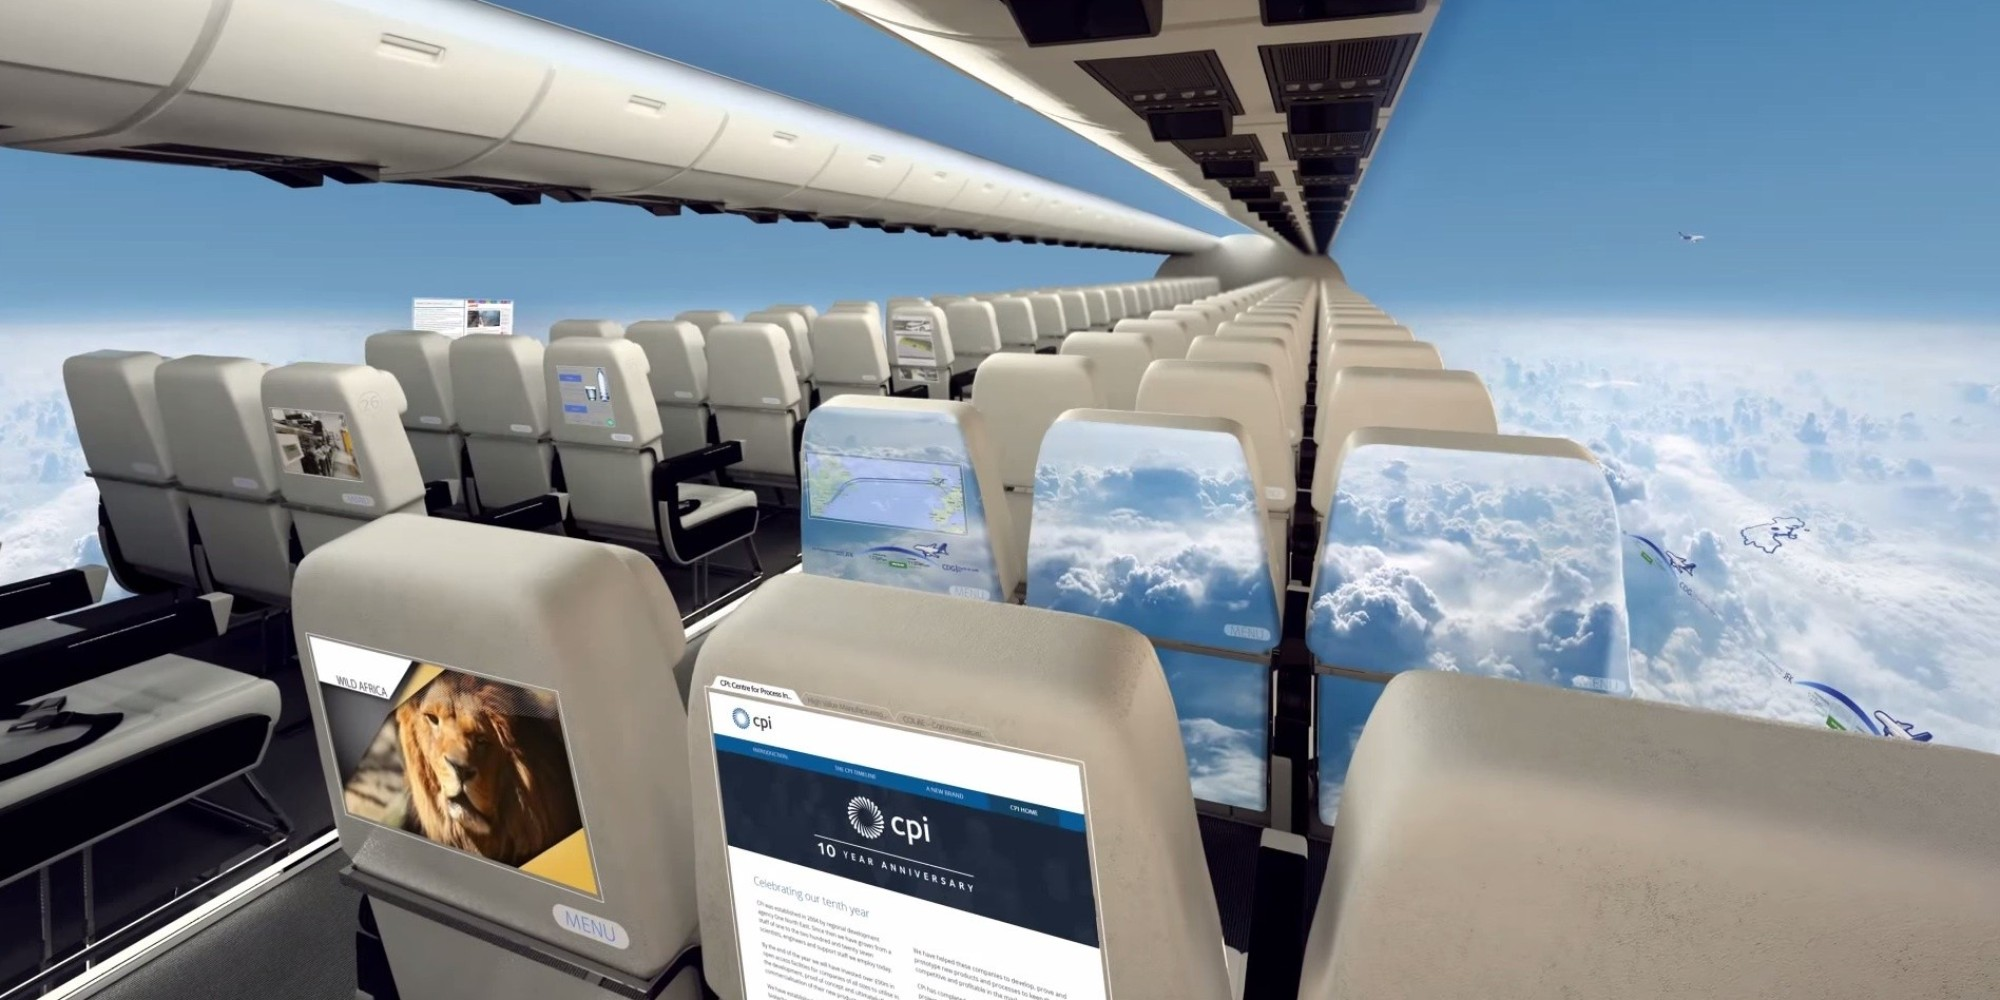 windowless airplanes of the future look exciting and terrifying